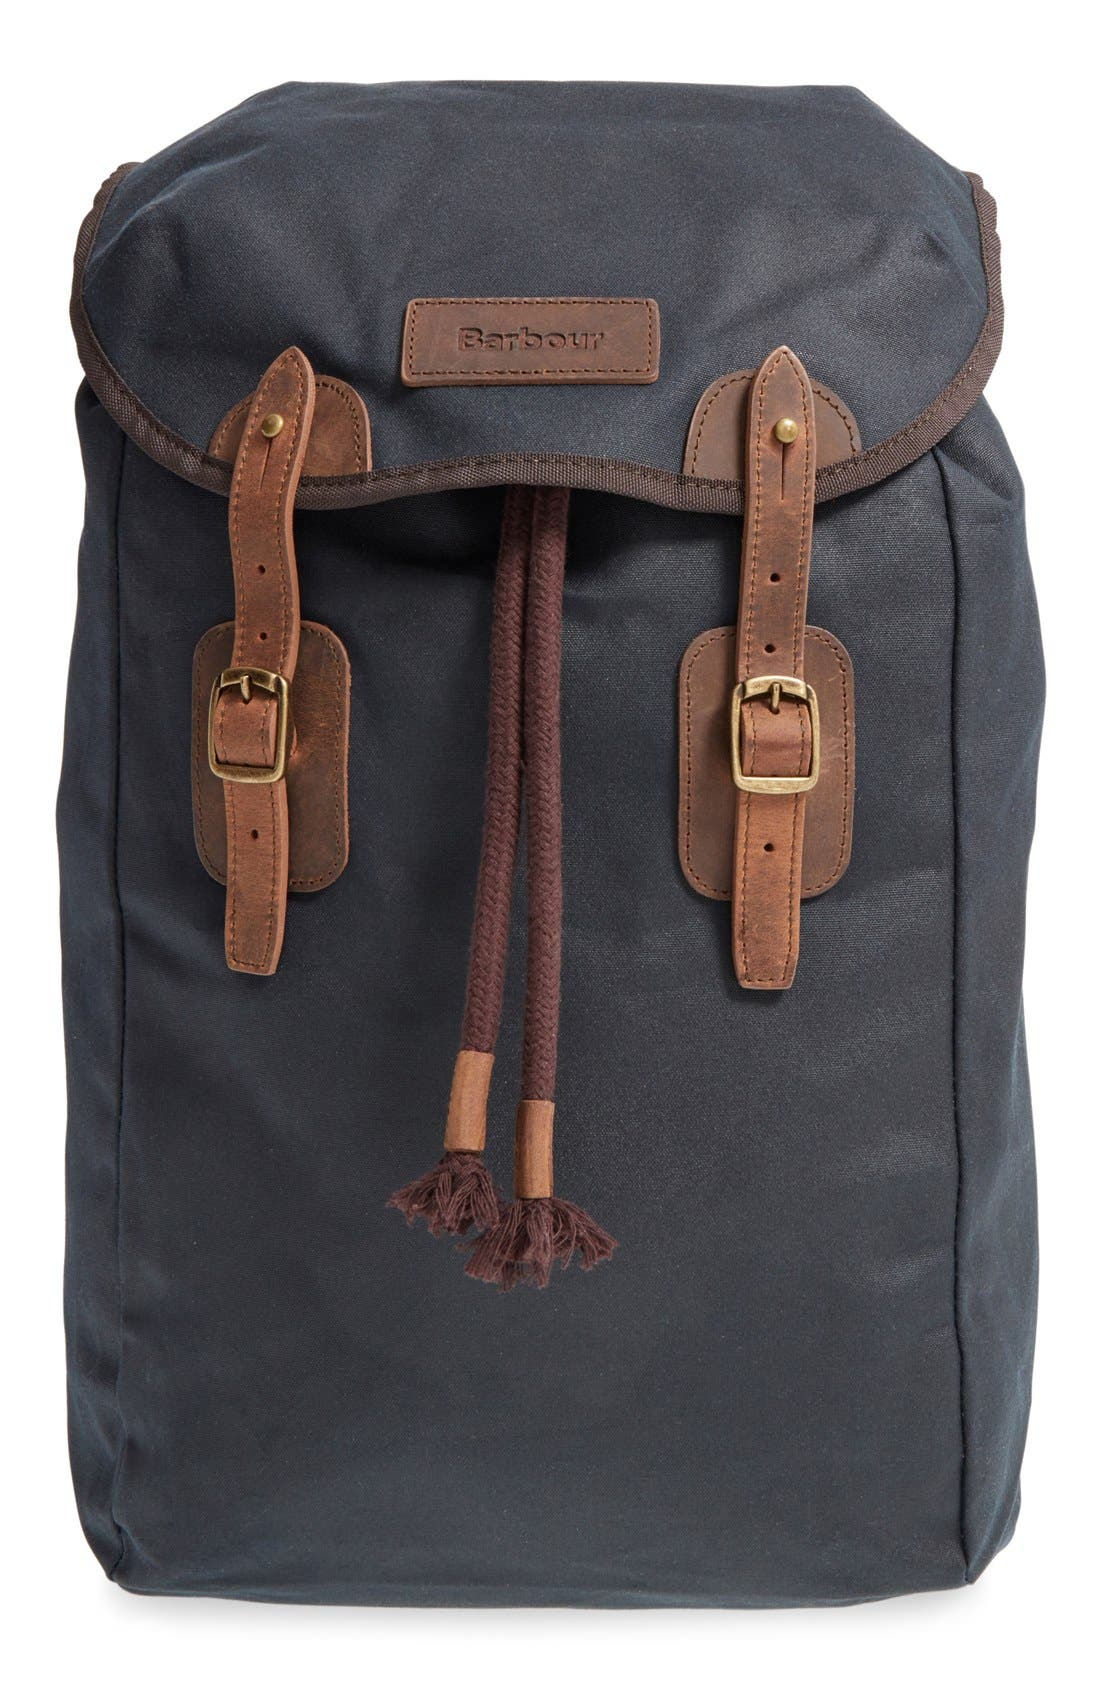 Main Image - Barbour Waxed Canvas Backpack